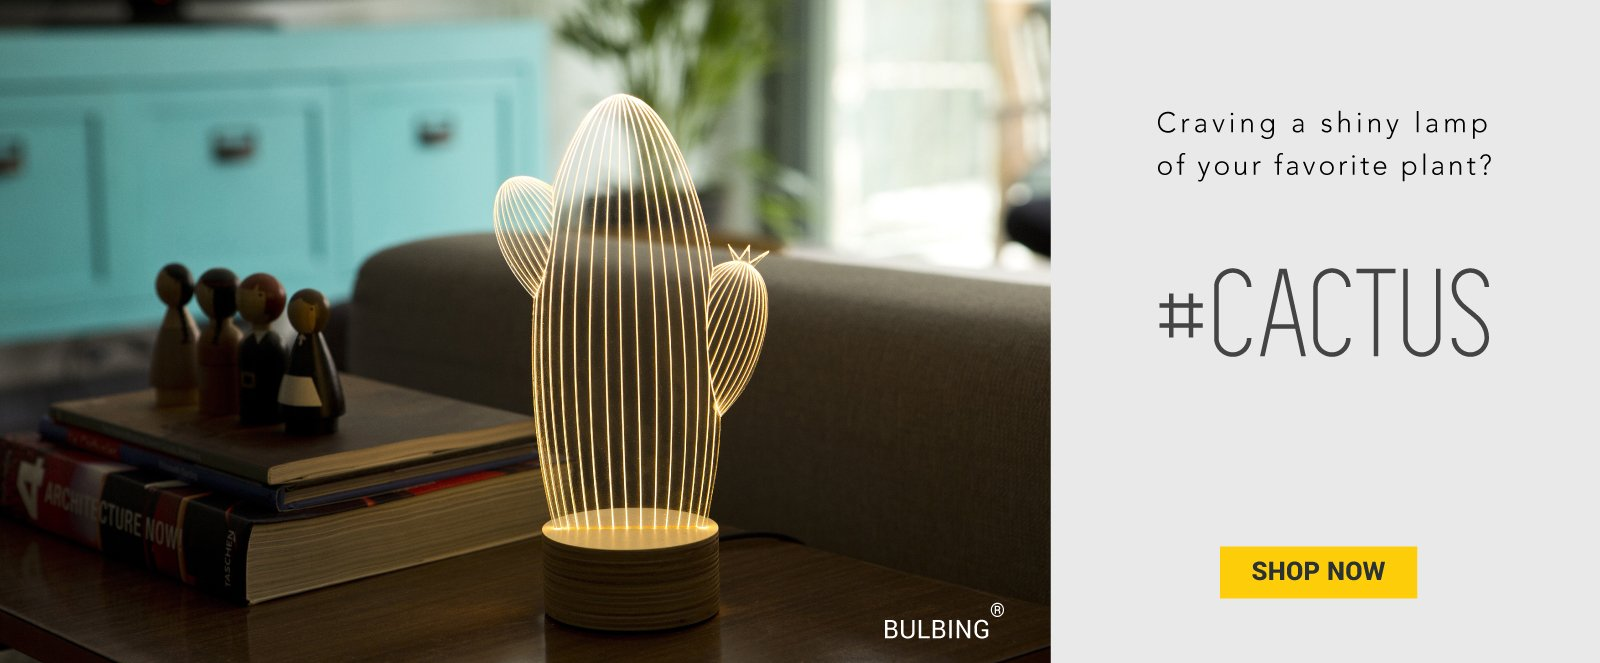 https://www.bulbing-light.com/collections/new-collection/products/city